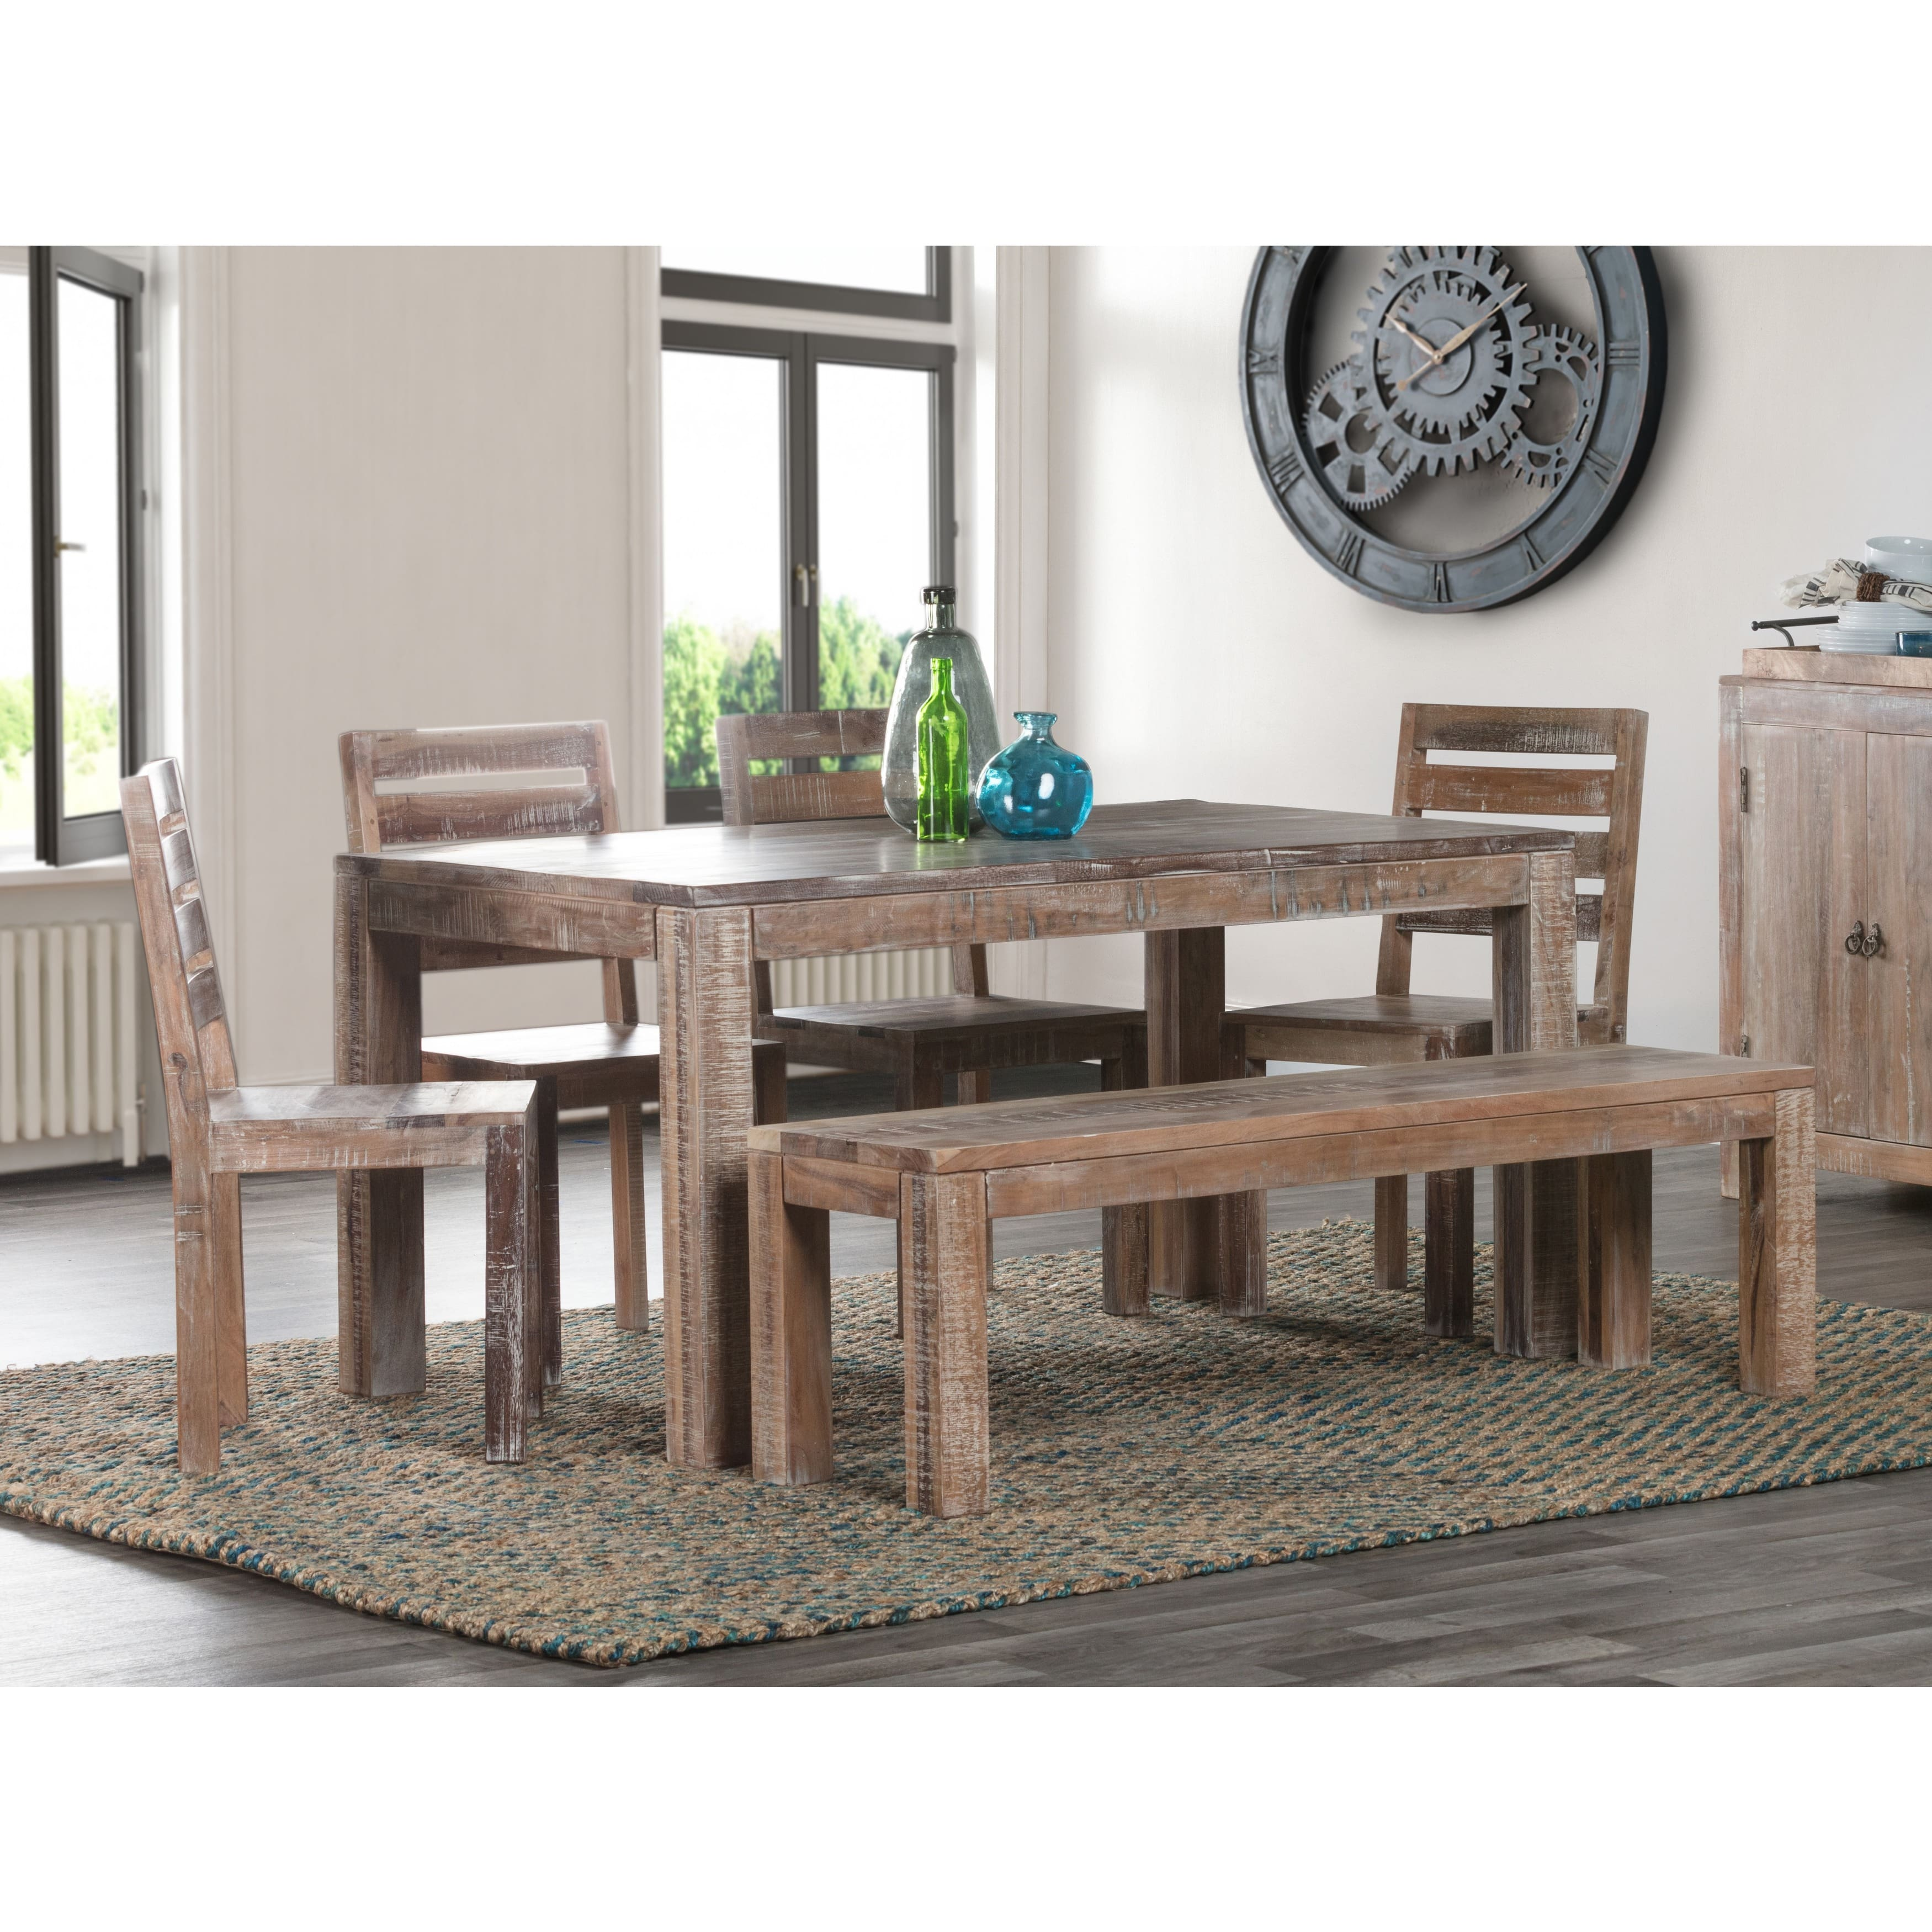 Buy Kitchen & Dining Room Tables Online At Overstock